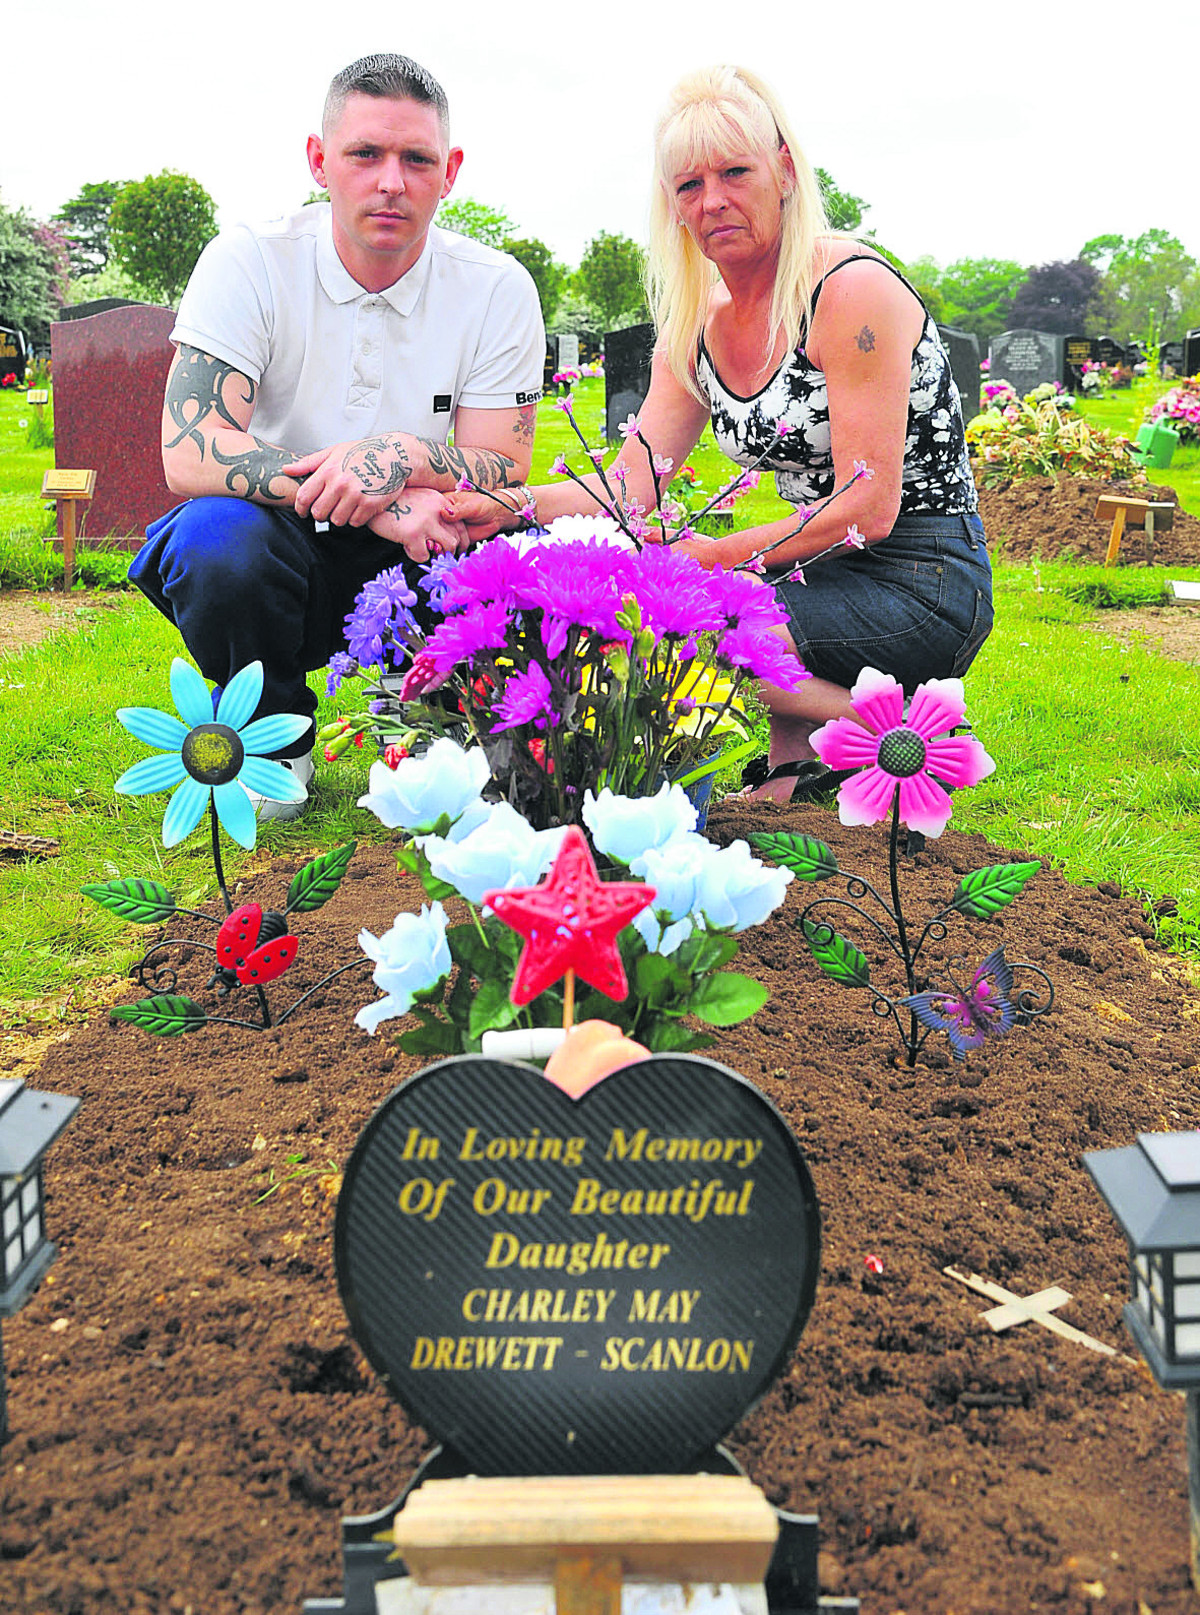 Jamie and Denice Scanlon are upset with workers at the Kingsdown crematorium who have covered their child's grave in mud